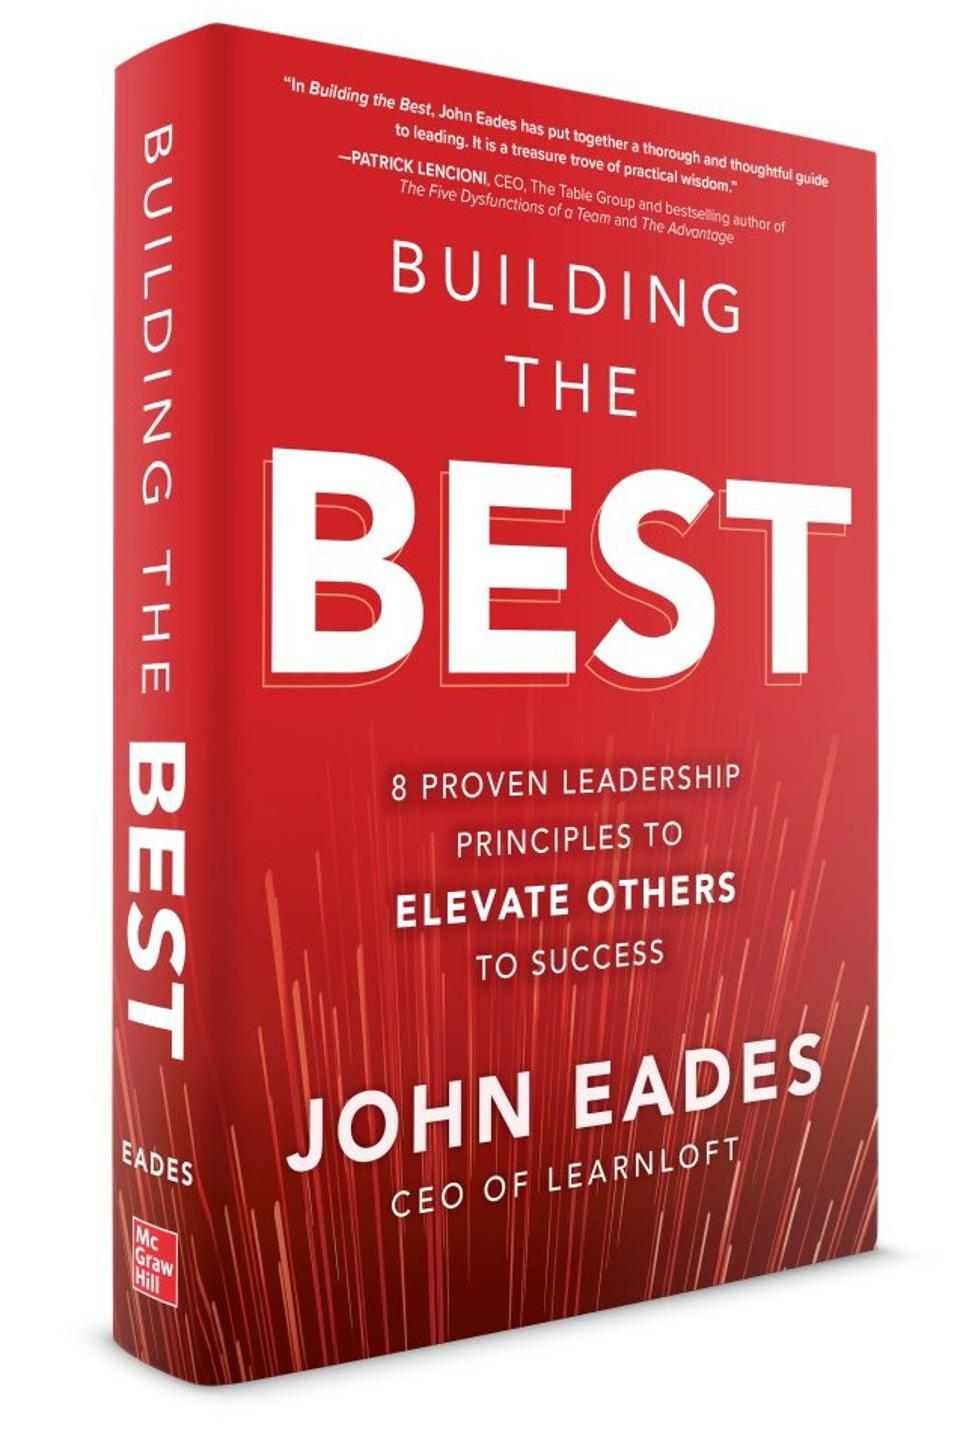 Effective leaders elevate others.